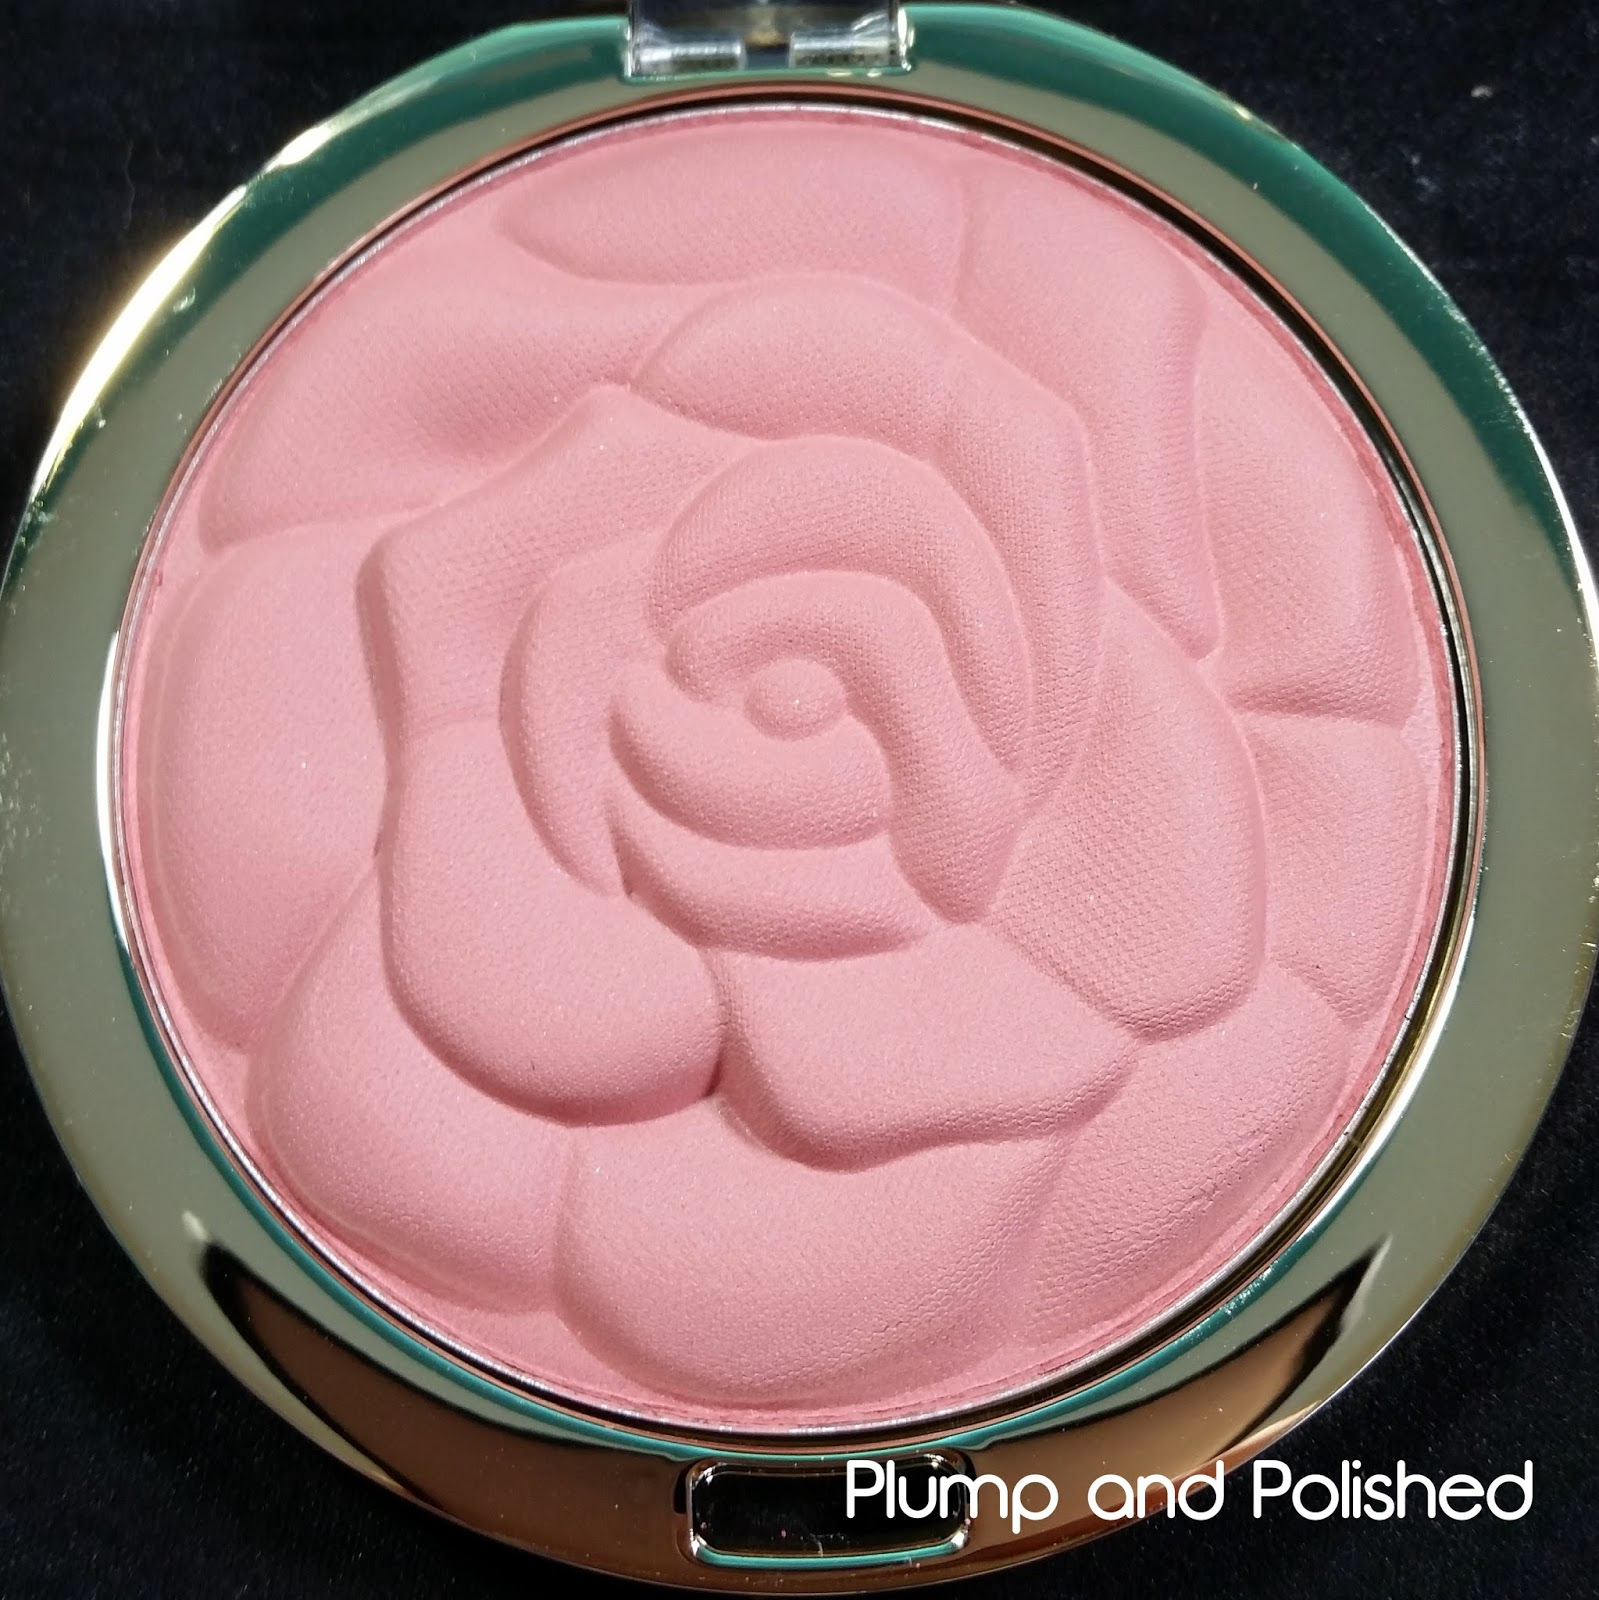 Milani - Rose Powder Blushes [Spring 2015] 01 Romantic Rose